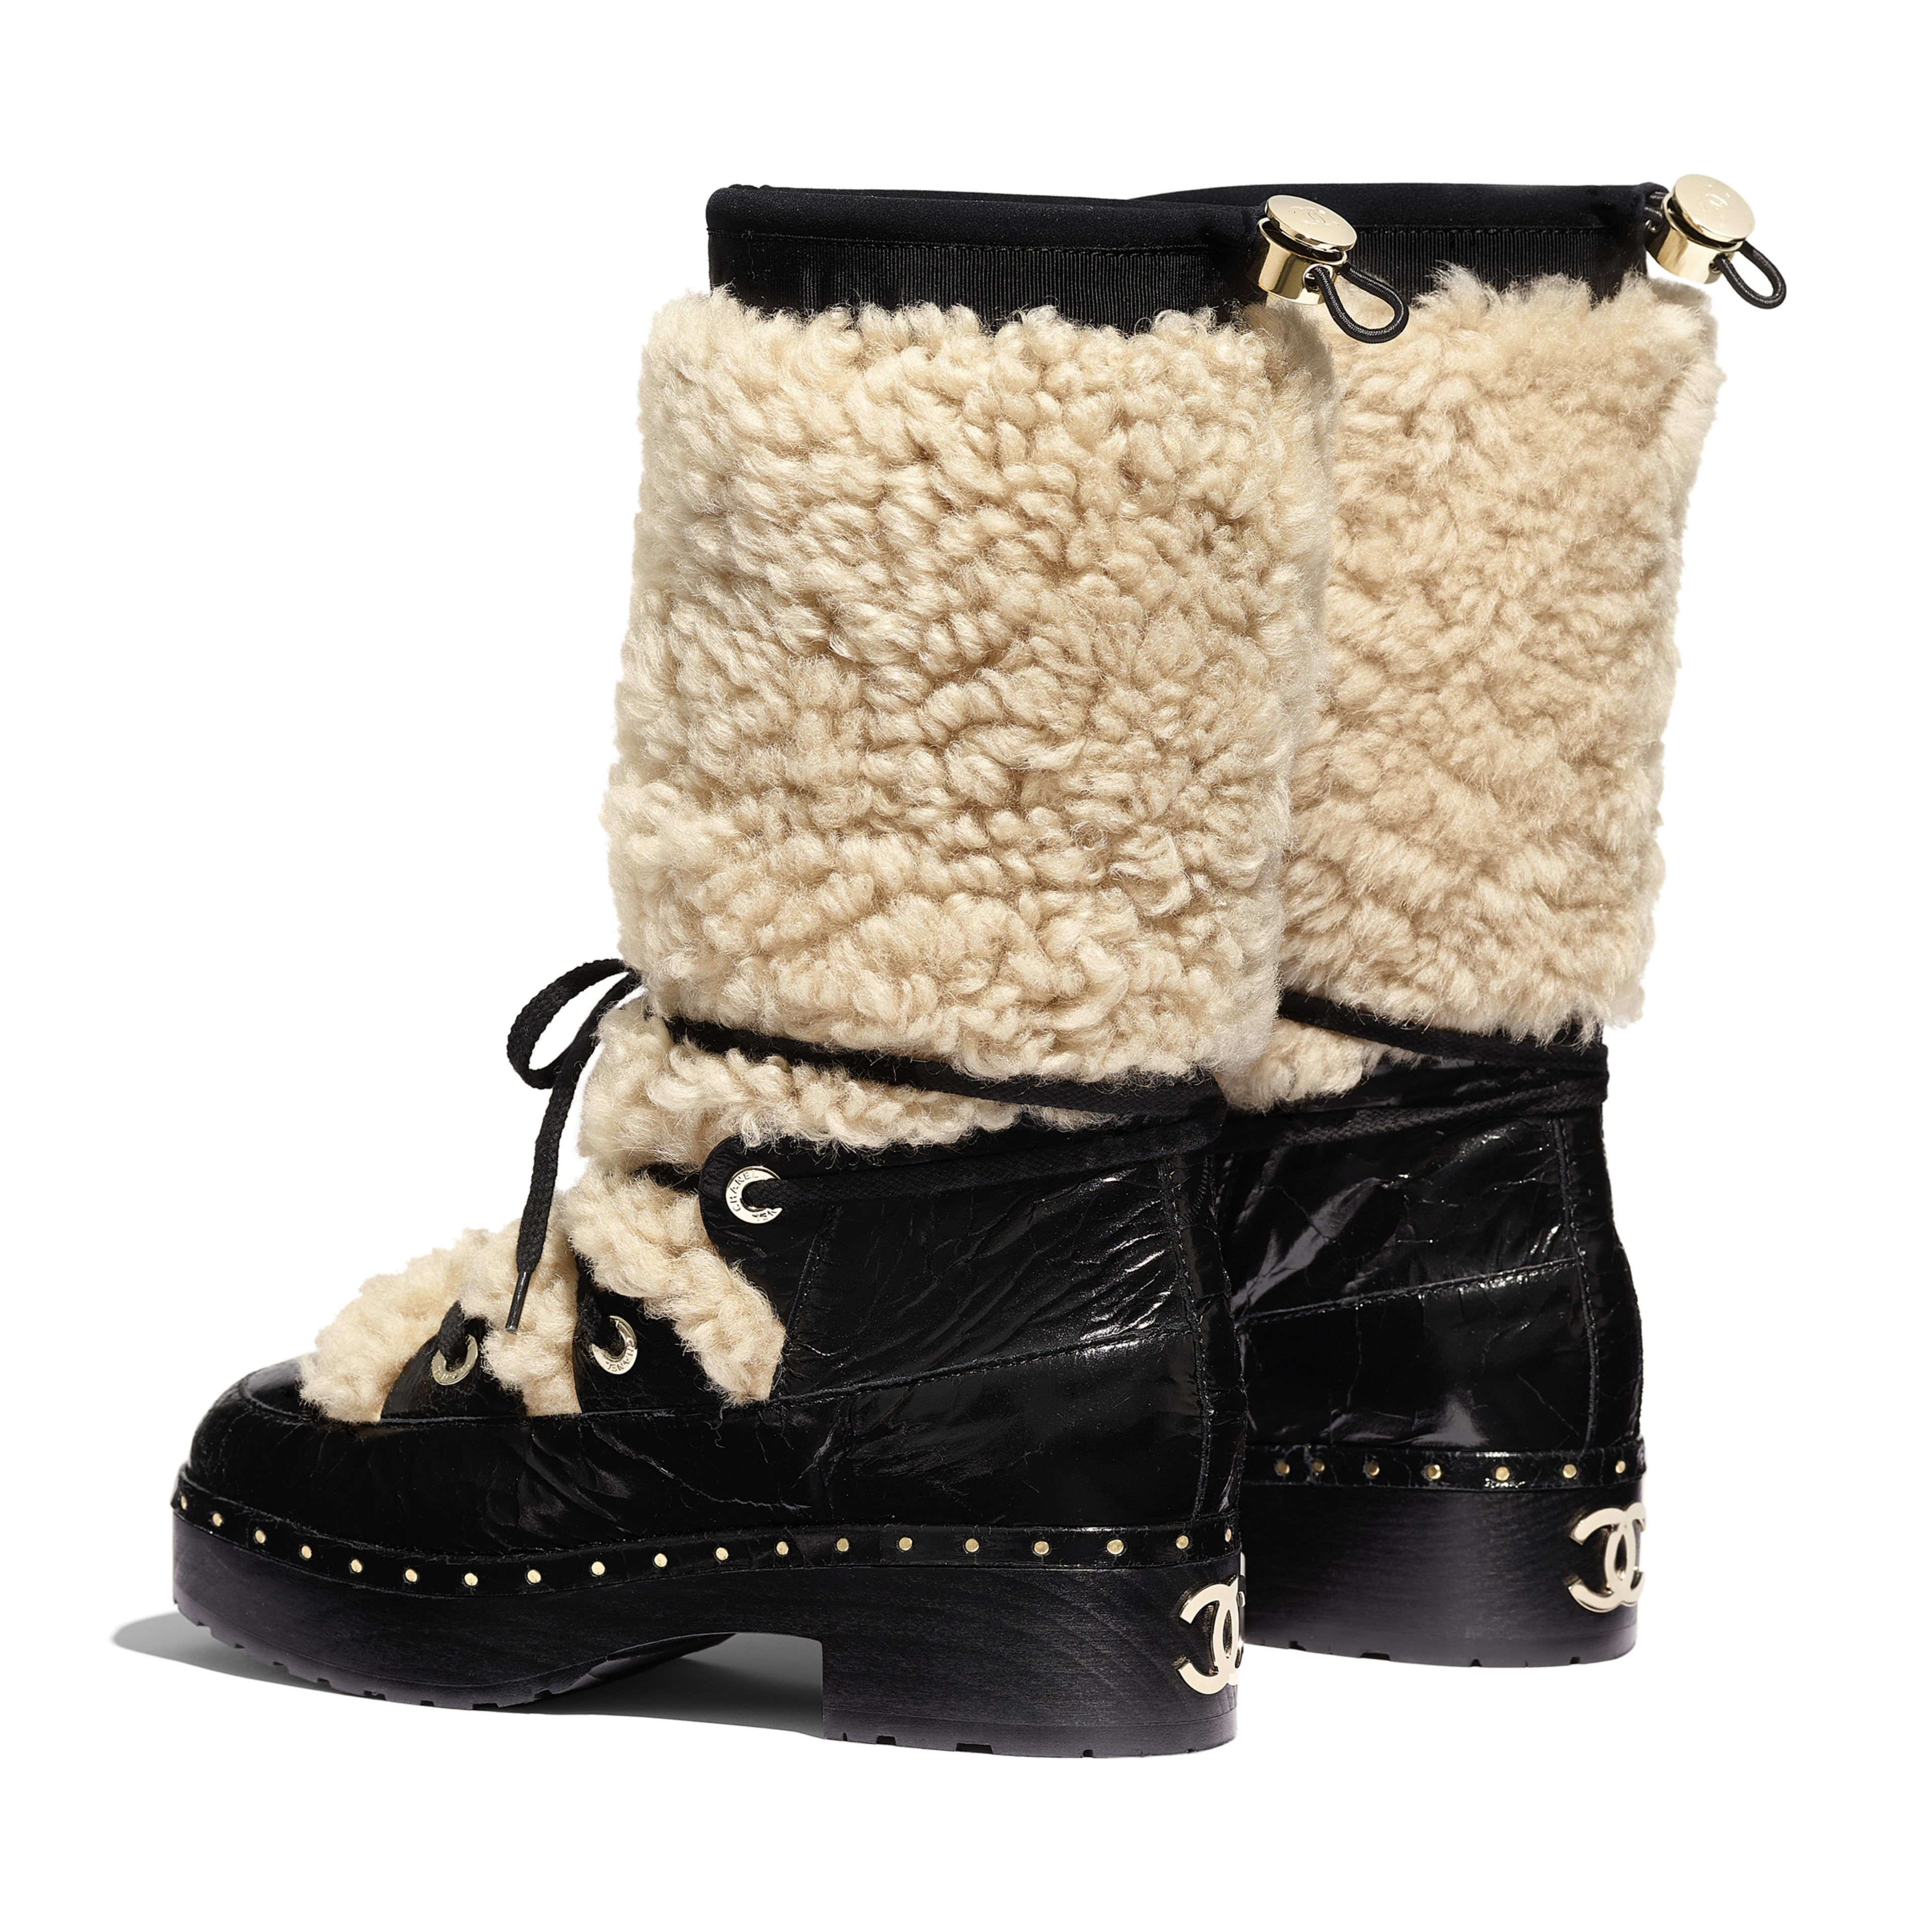 High Boots - Beige & Black - Shearling & Crackled Sheepskin - Other view - see full sized version